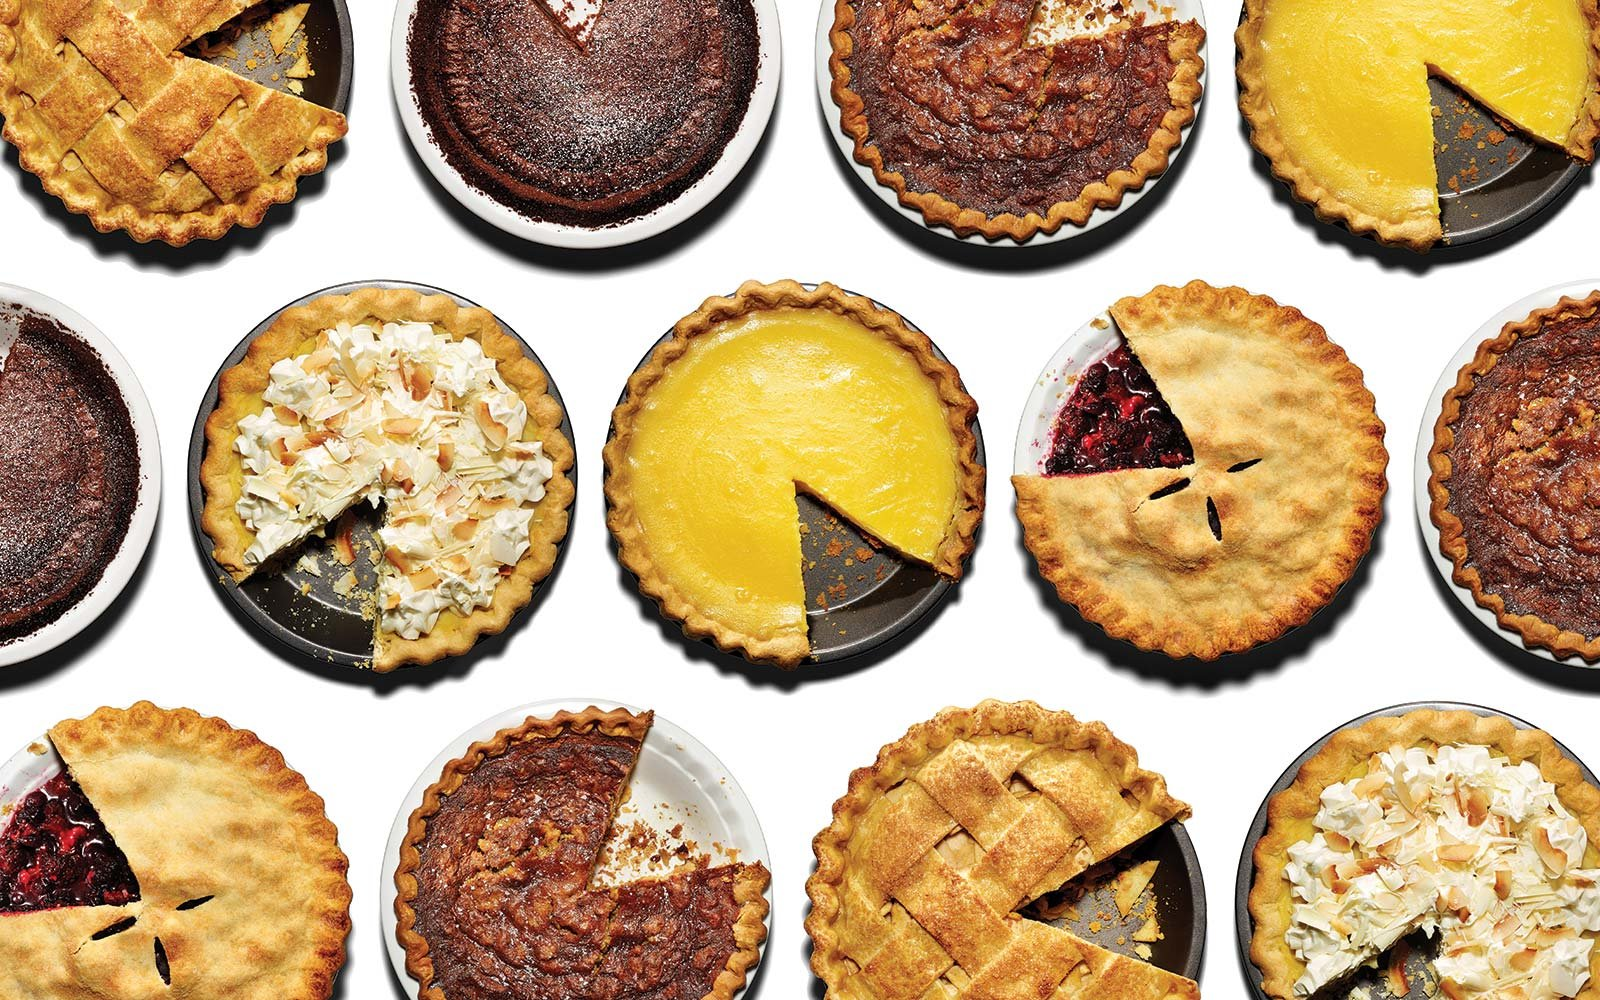 National Pie Day is Today. Here Are Some Pies To Stare At.